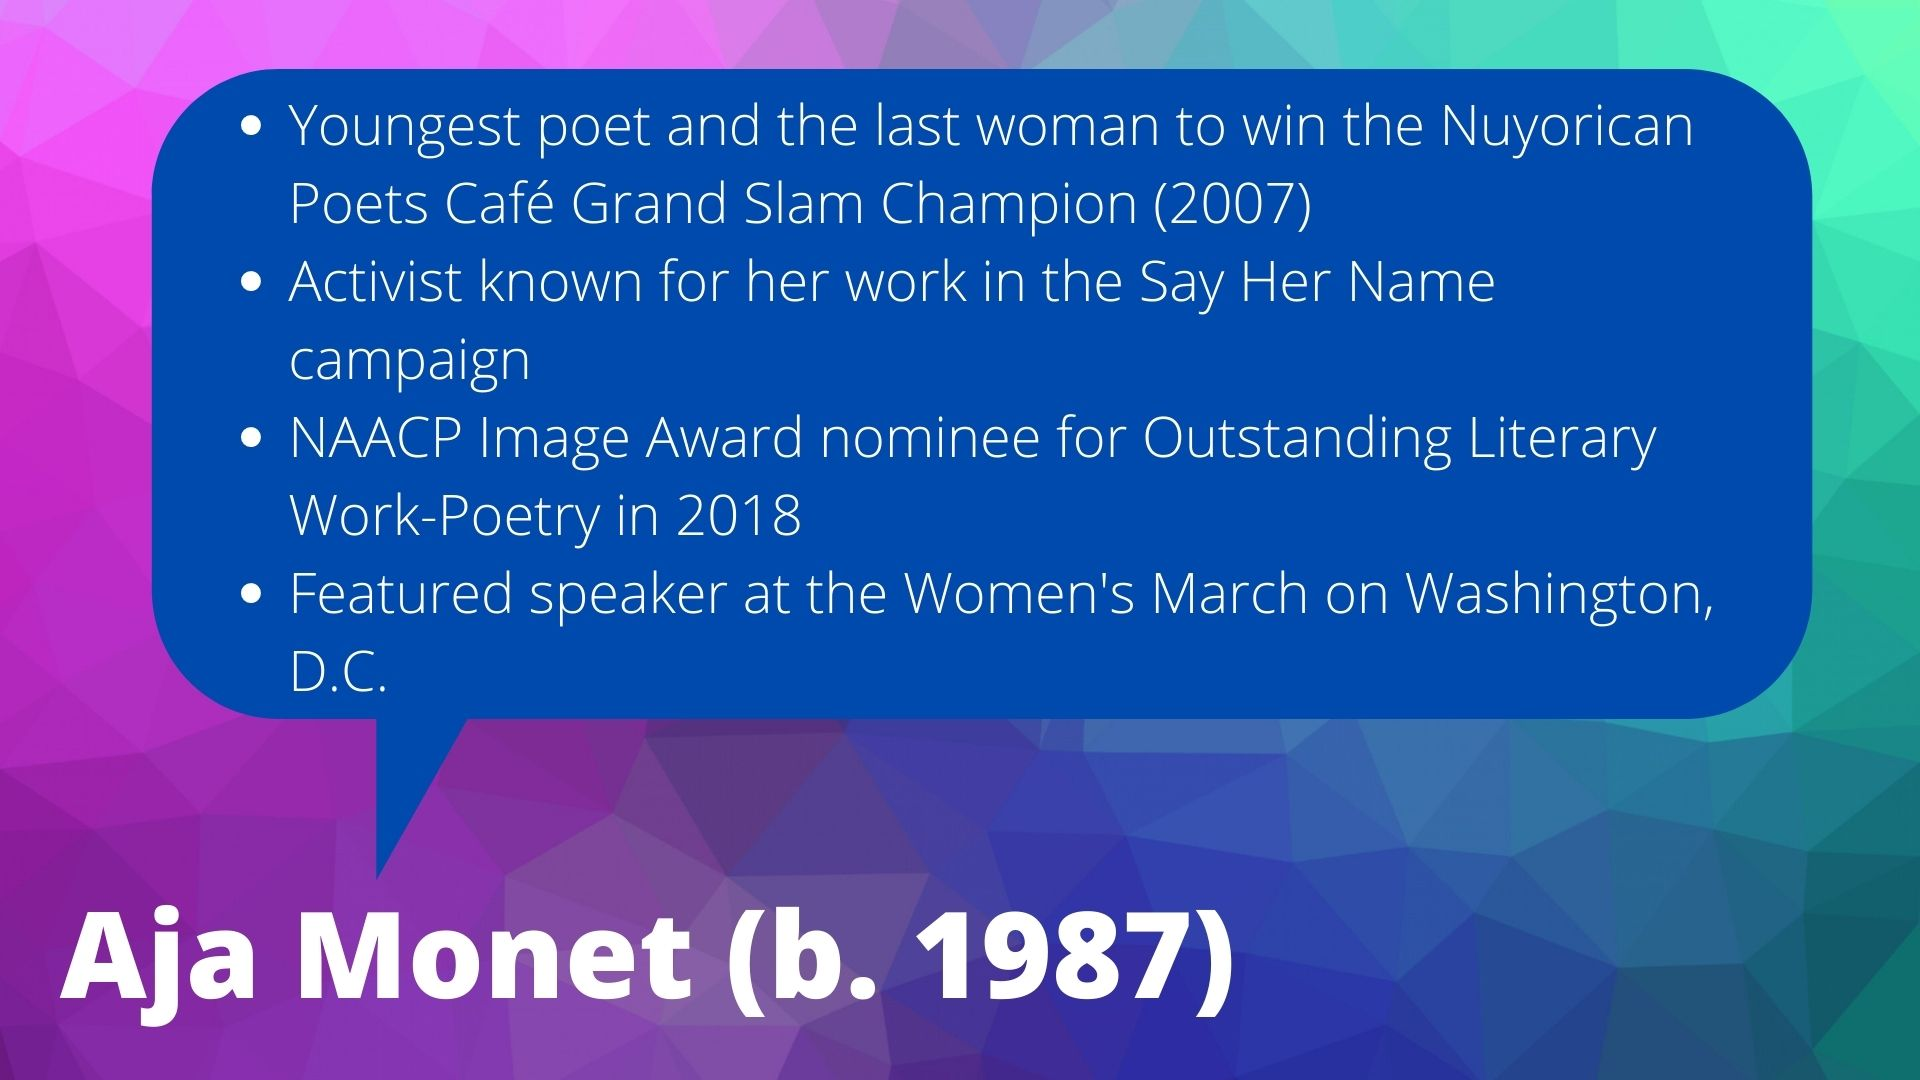 Aja Monet (b. 1987) Youngest poet and the last woman to win the Nuyorican Poets Café Grand Slam Champion (2007)  Activist known for her work in the Say Her Name campaign NAACP Image Award nominee for Outstanding Literary Work-Poetry in 2018 Featured speaker at the Women's March on Washington, D.C.